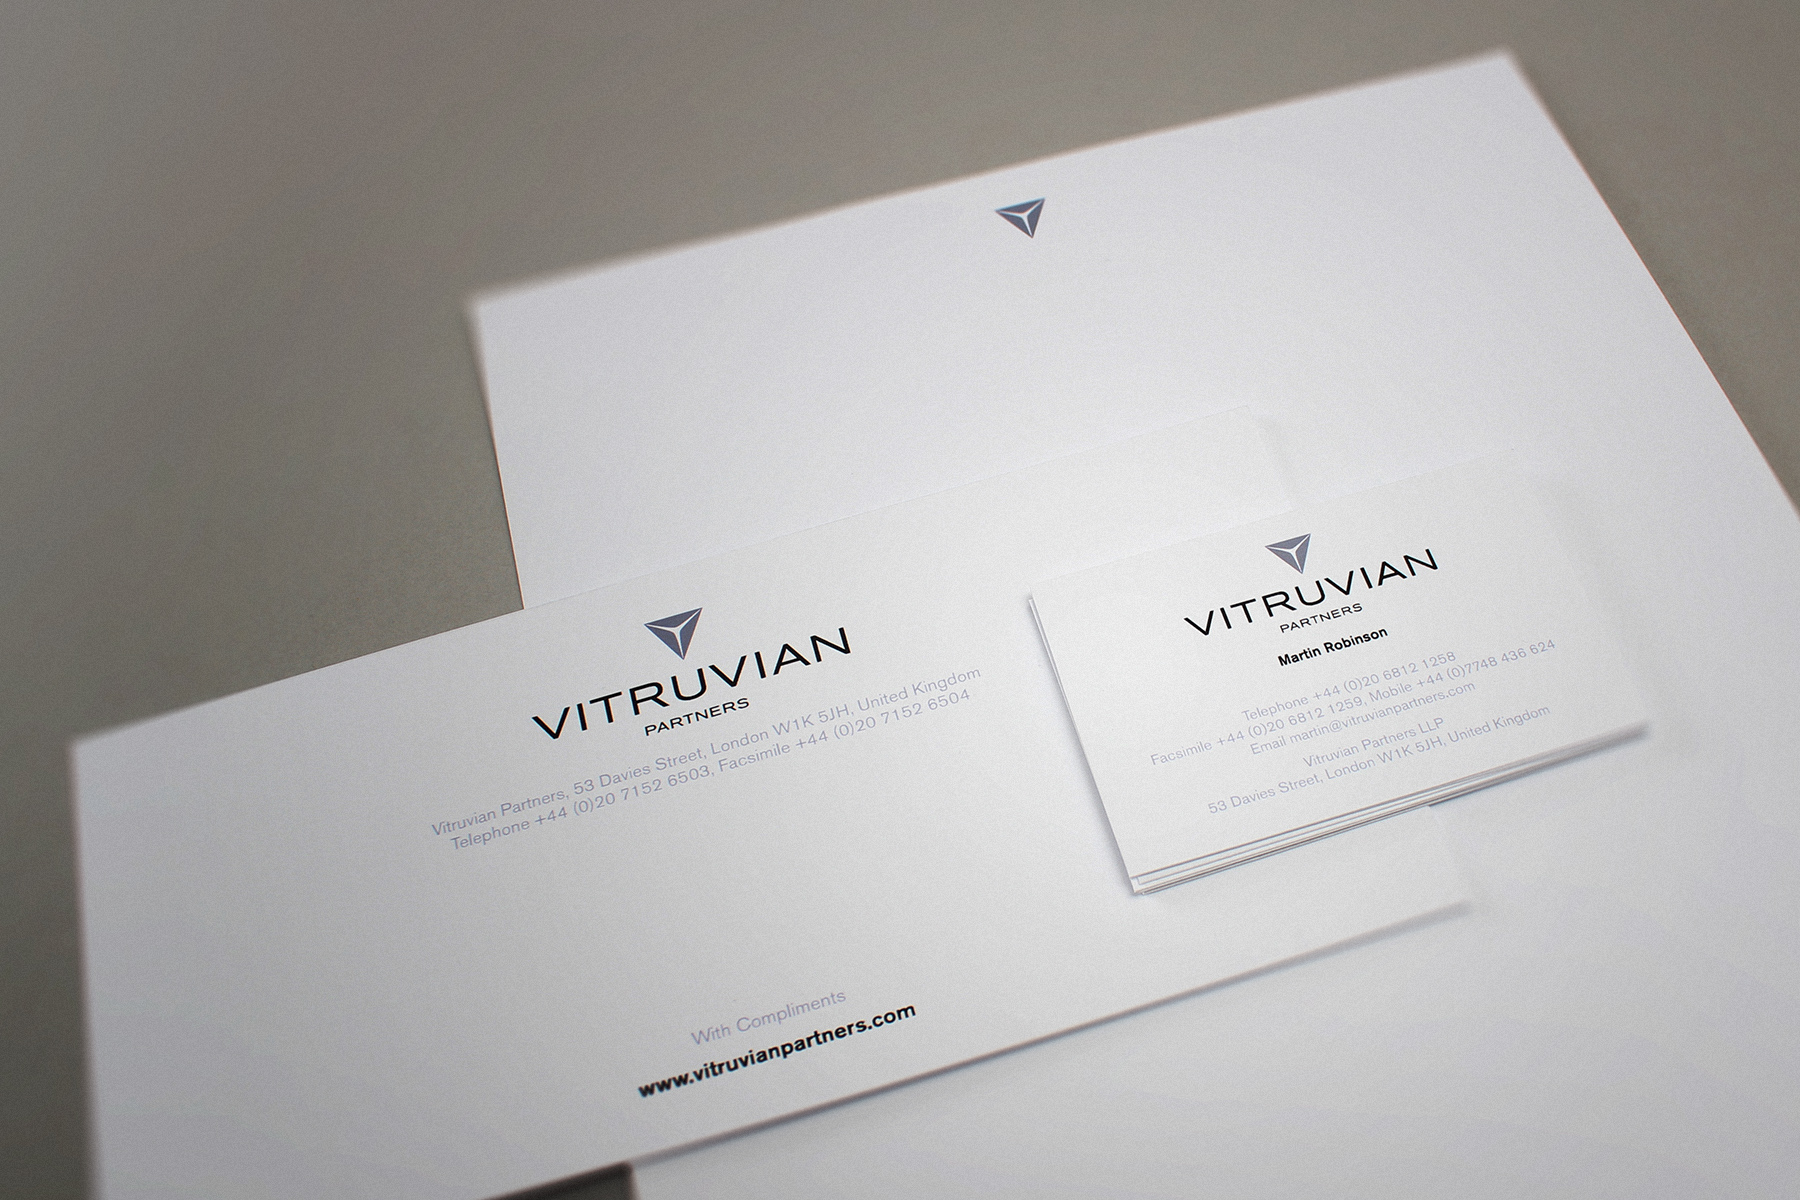 The business stationery relies on subtle effect rather than strong visuals.